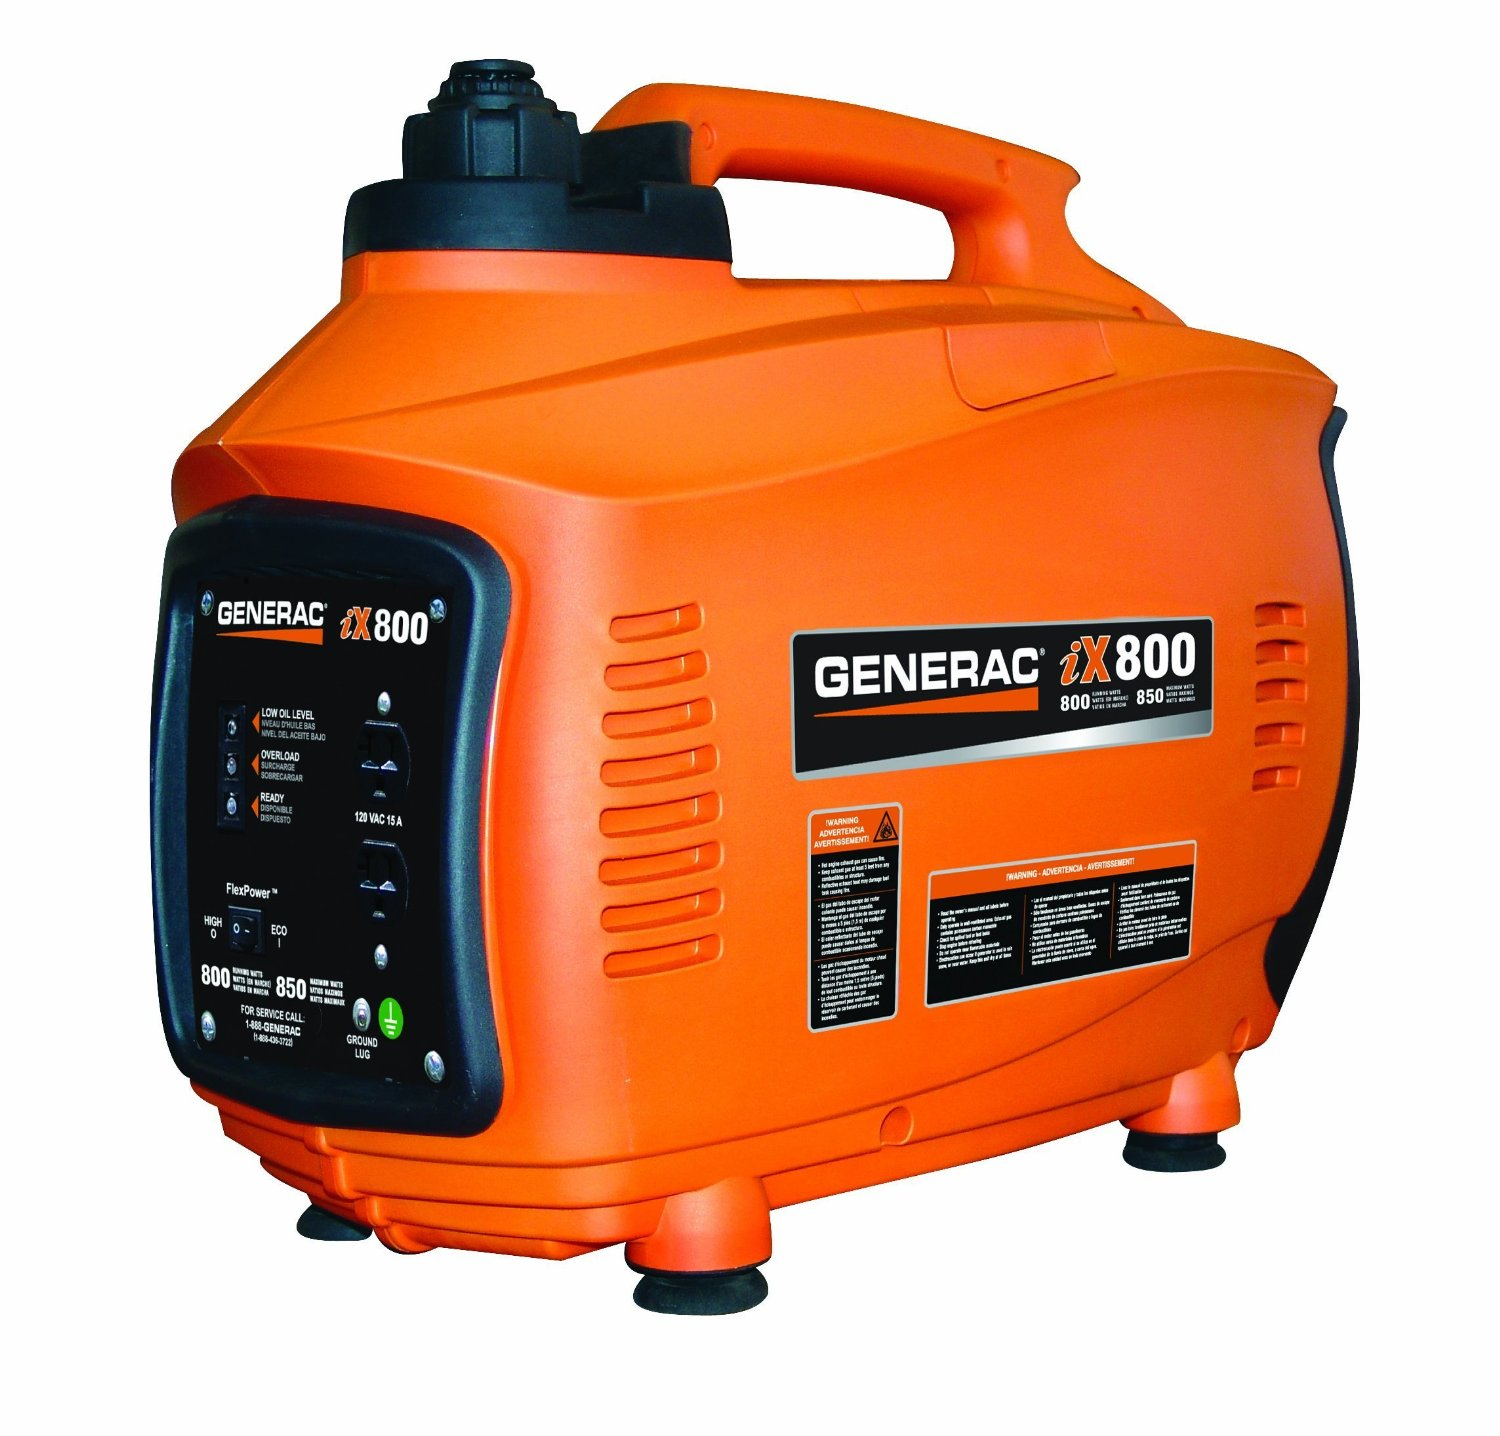 Inverter portable generator reviews - Choosing a gasoline powered generator ...